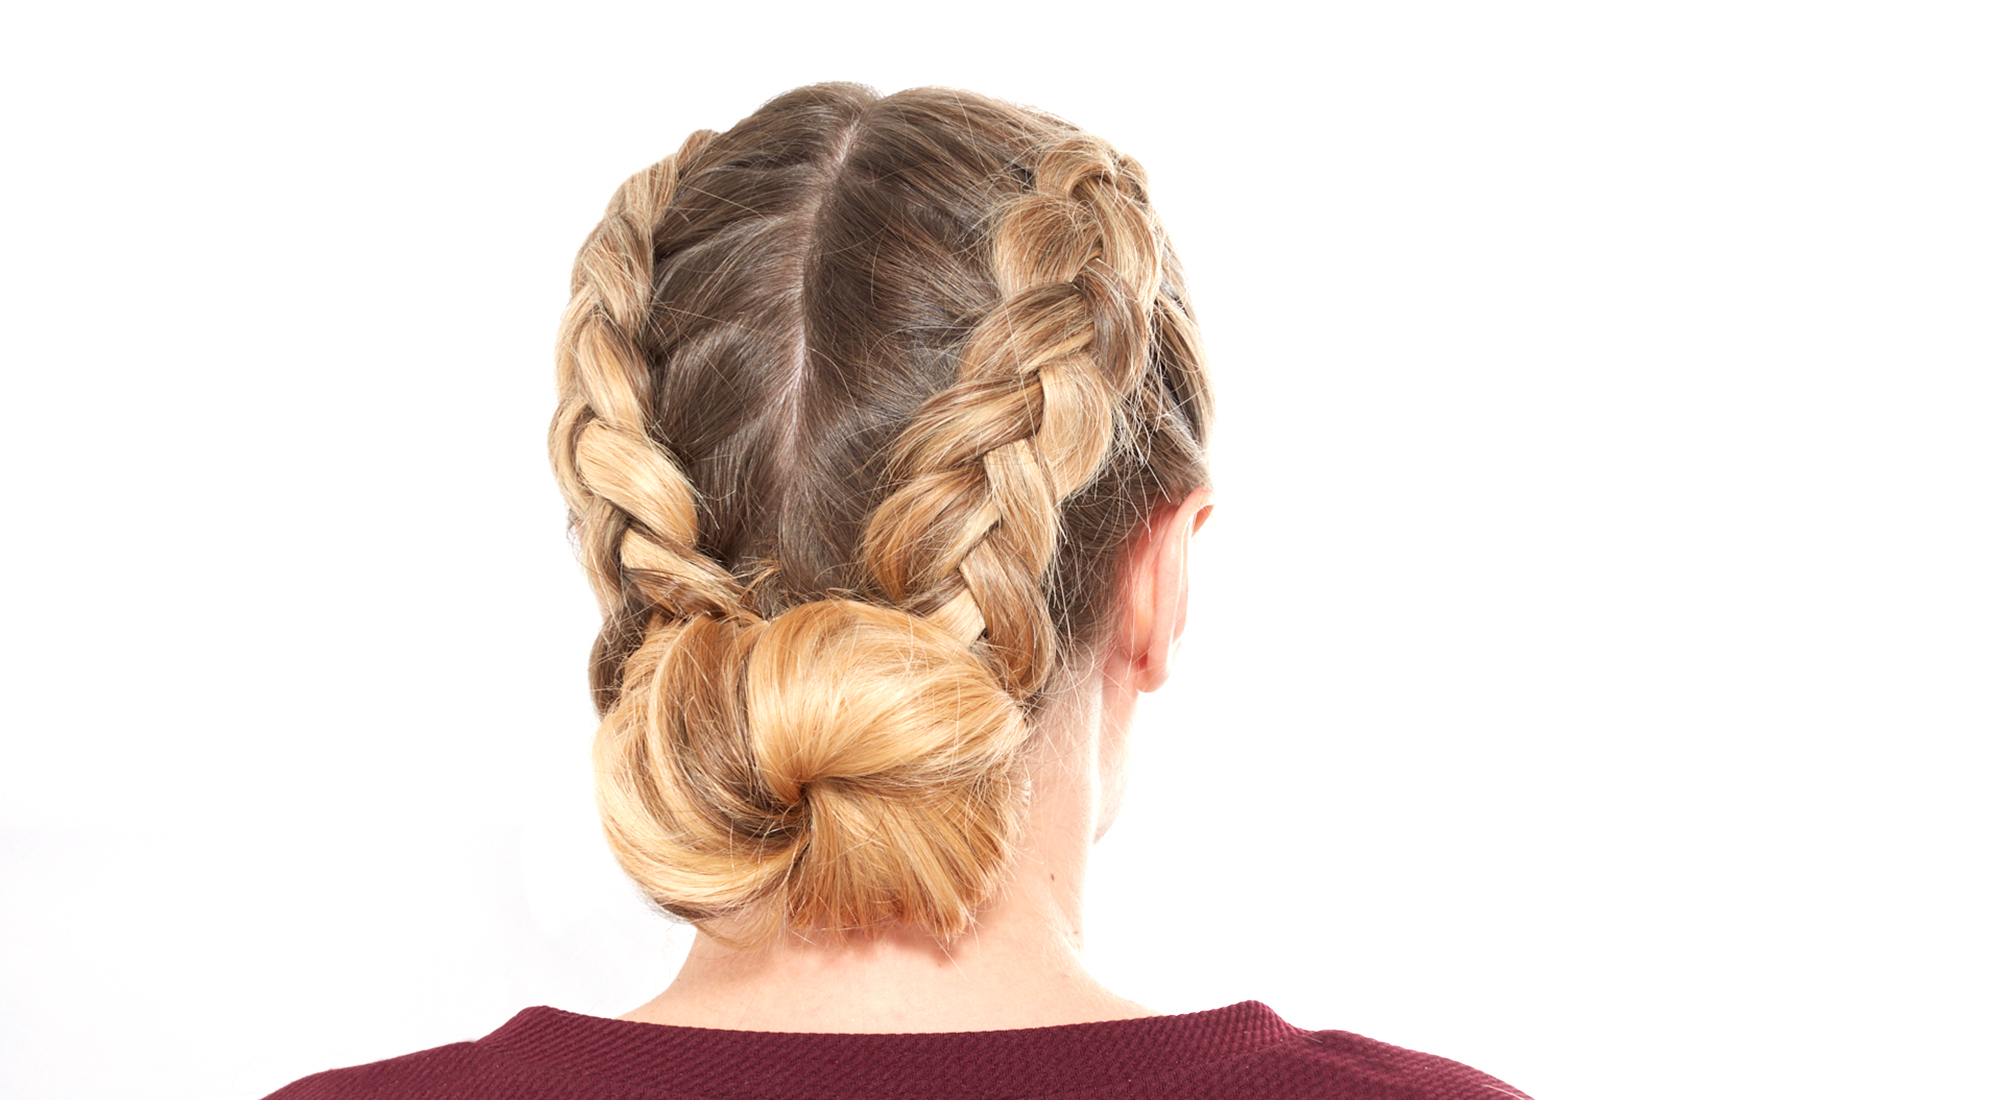 Blow Ltd Pertaining To Most Up To Date Dutch Braid Bun Hairstyles (View 2 of 20)